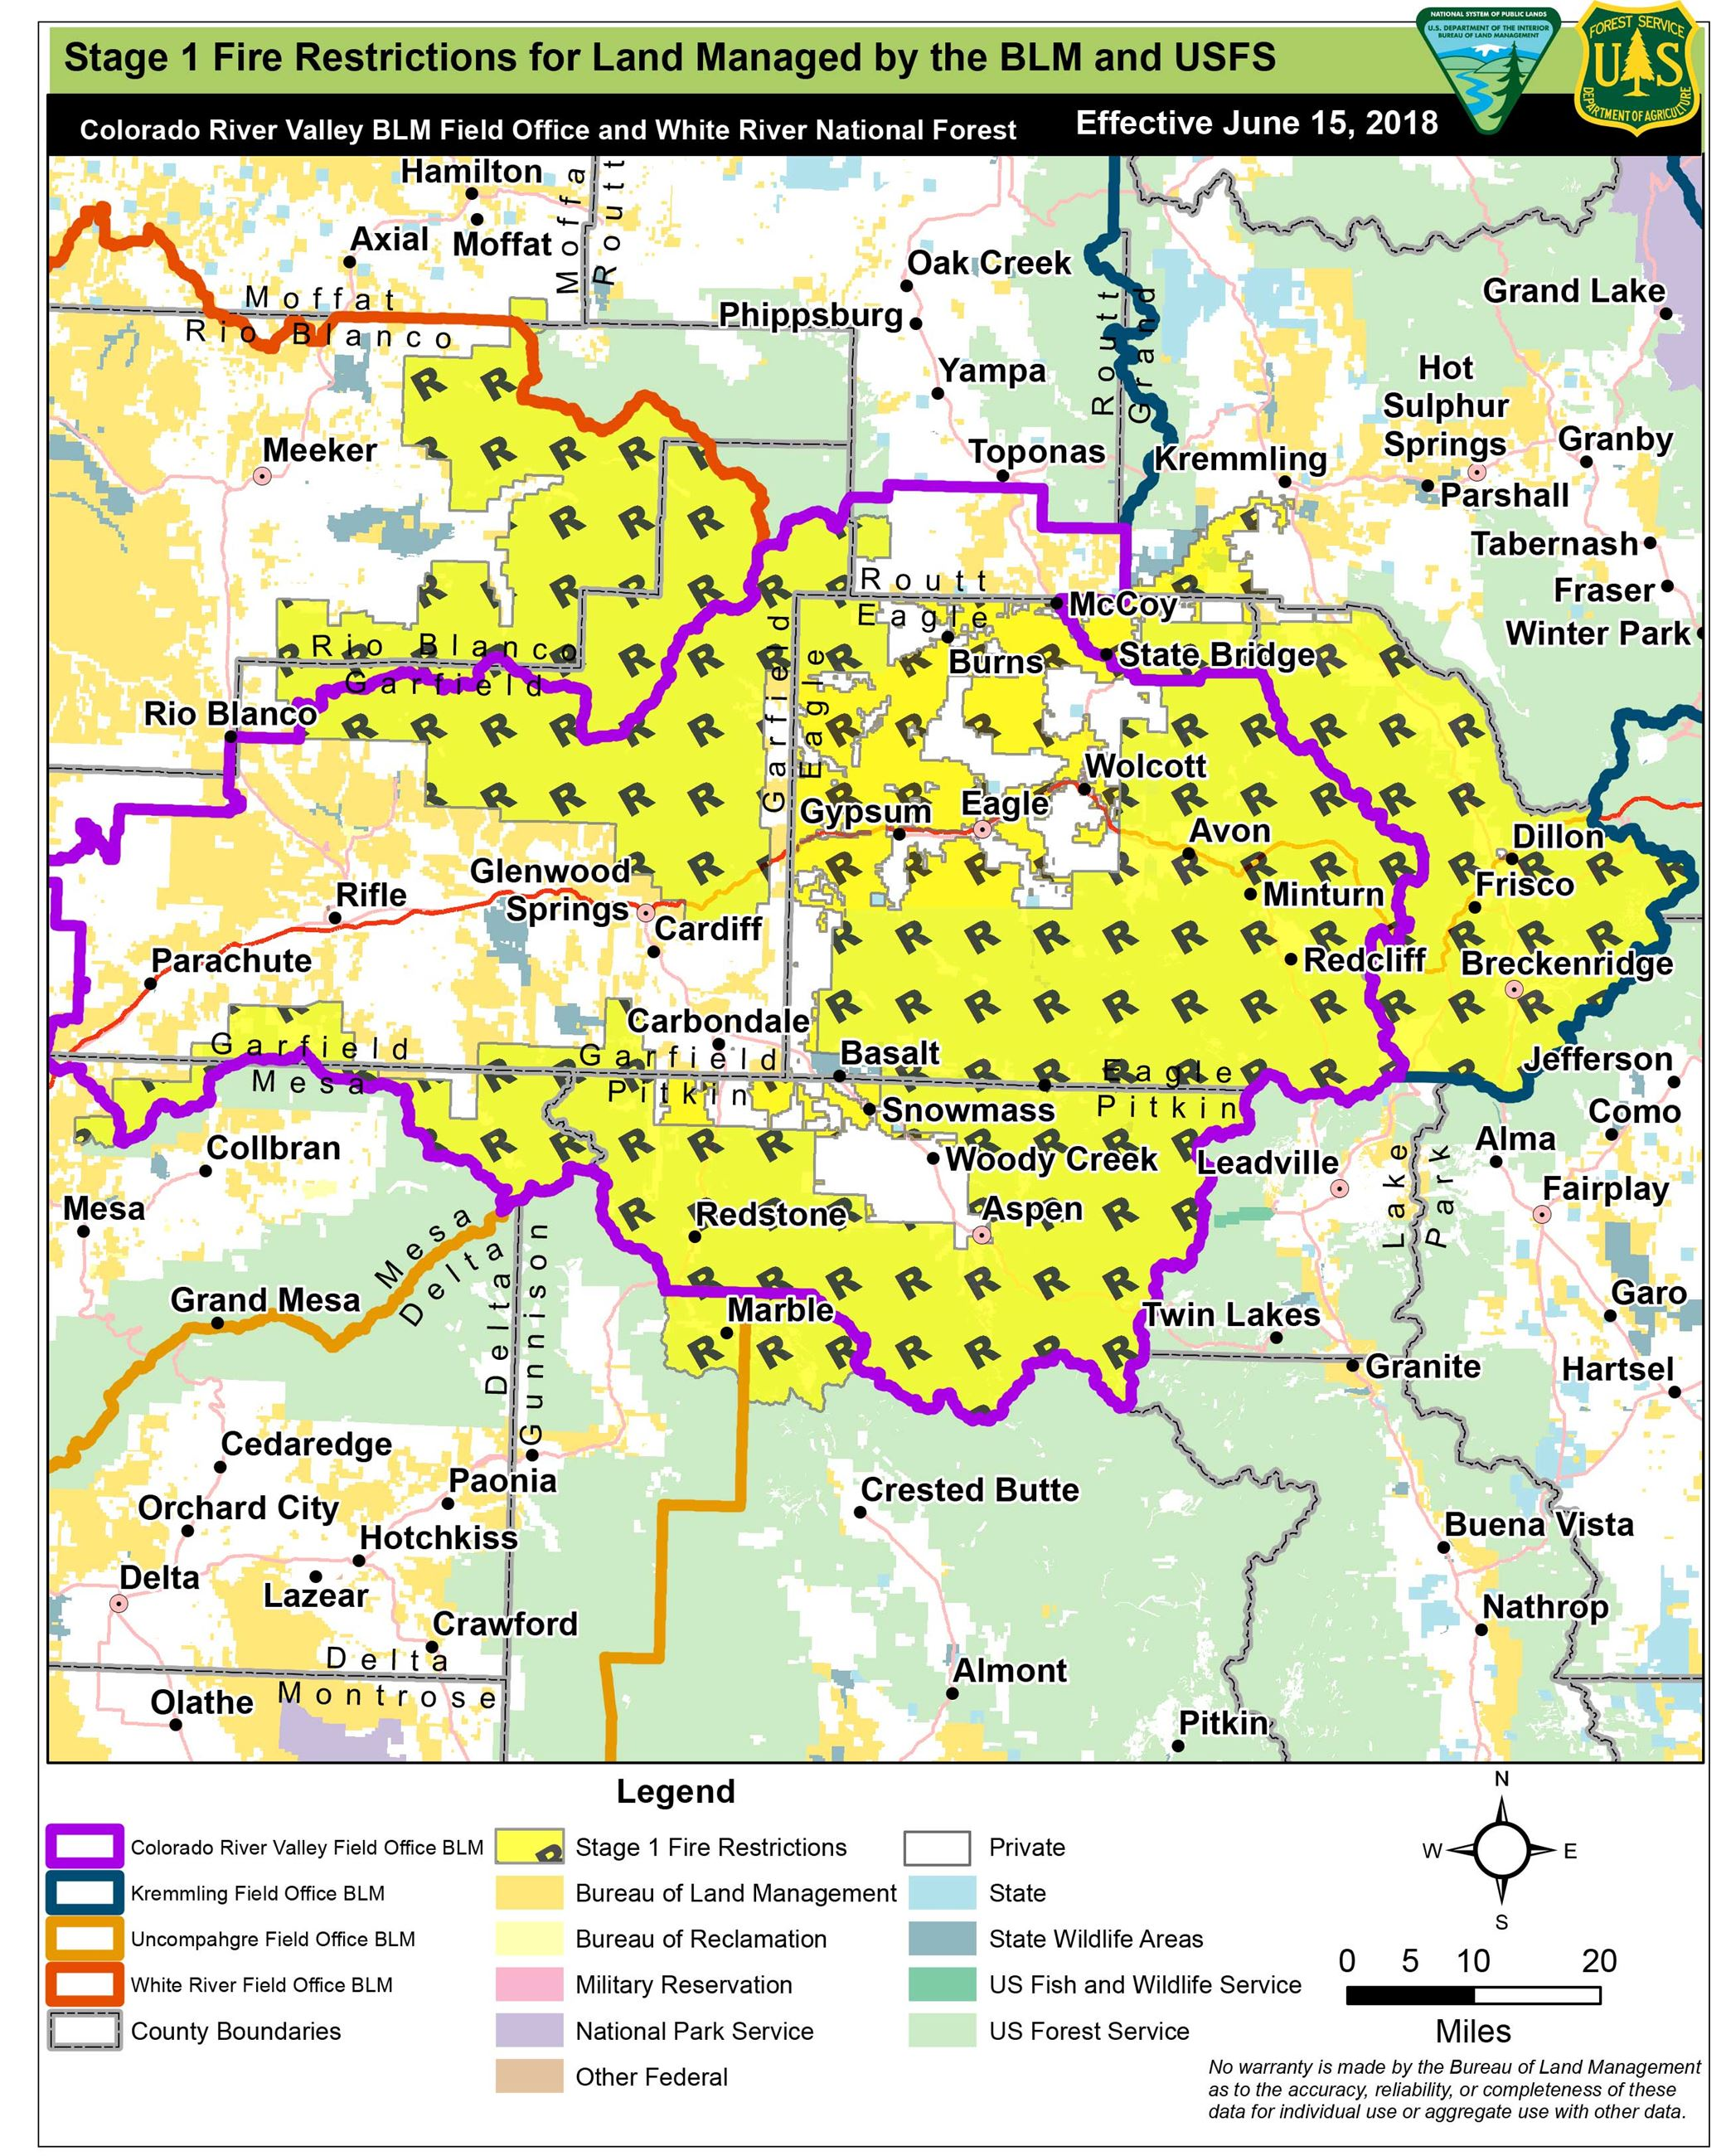 fire restrictions map 6-13-18